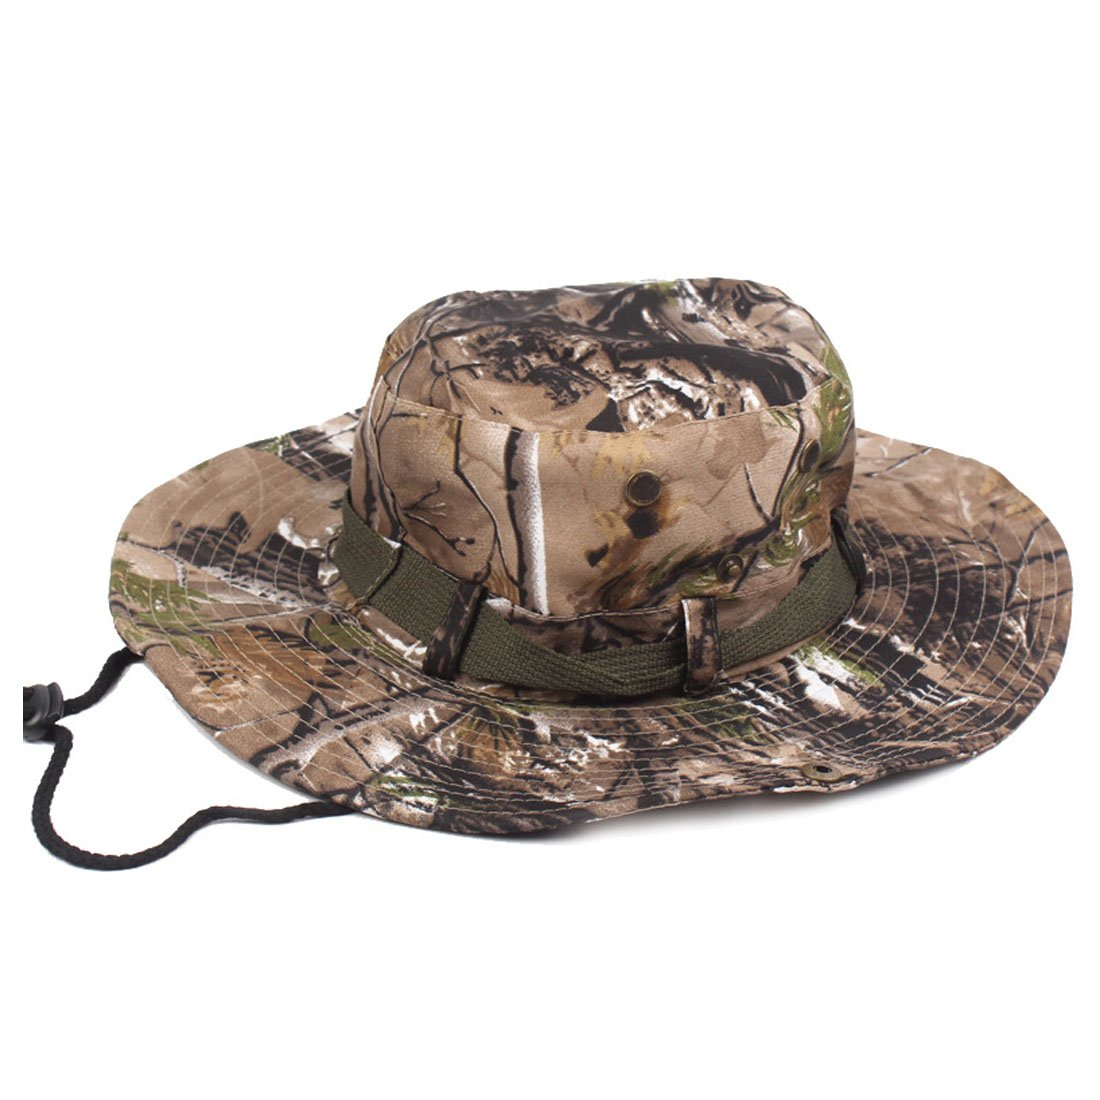 King Star Mens Boonie Bucket Sun Hat Summer Cap Outdoor Camouflage Camping  Hats Style 1 at Amazon Women s Clothing store  769145bc8b6